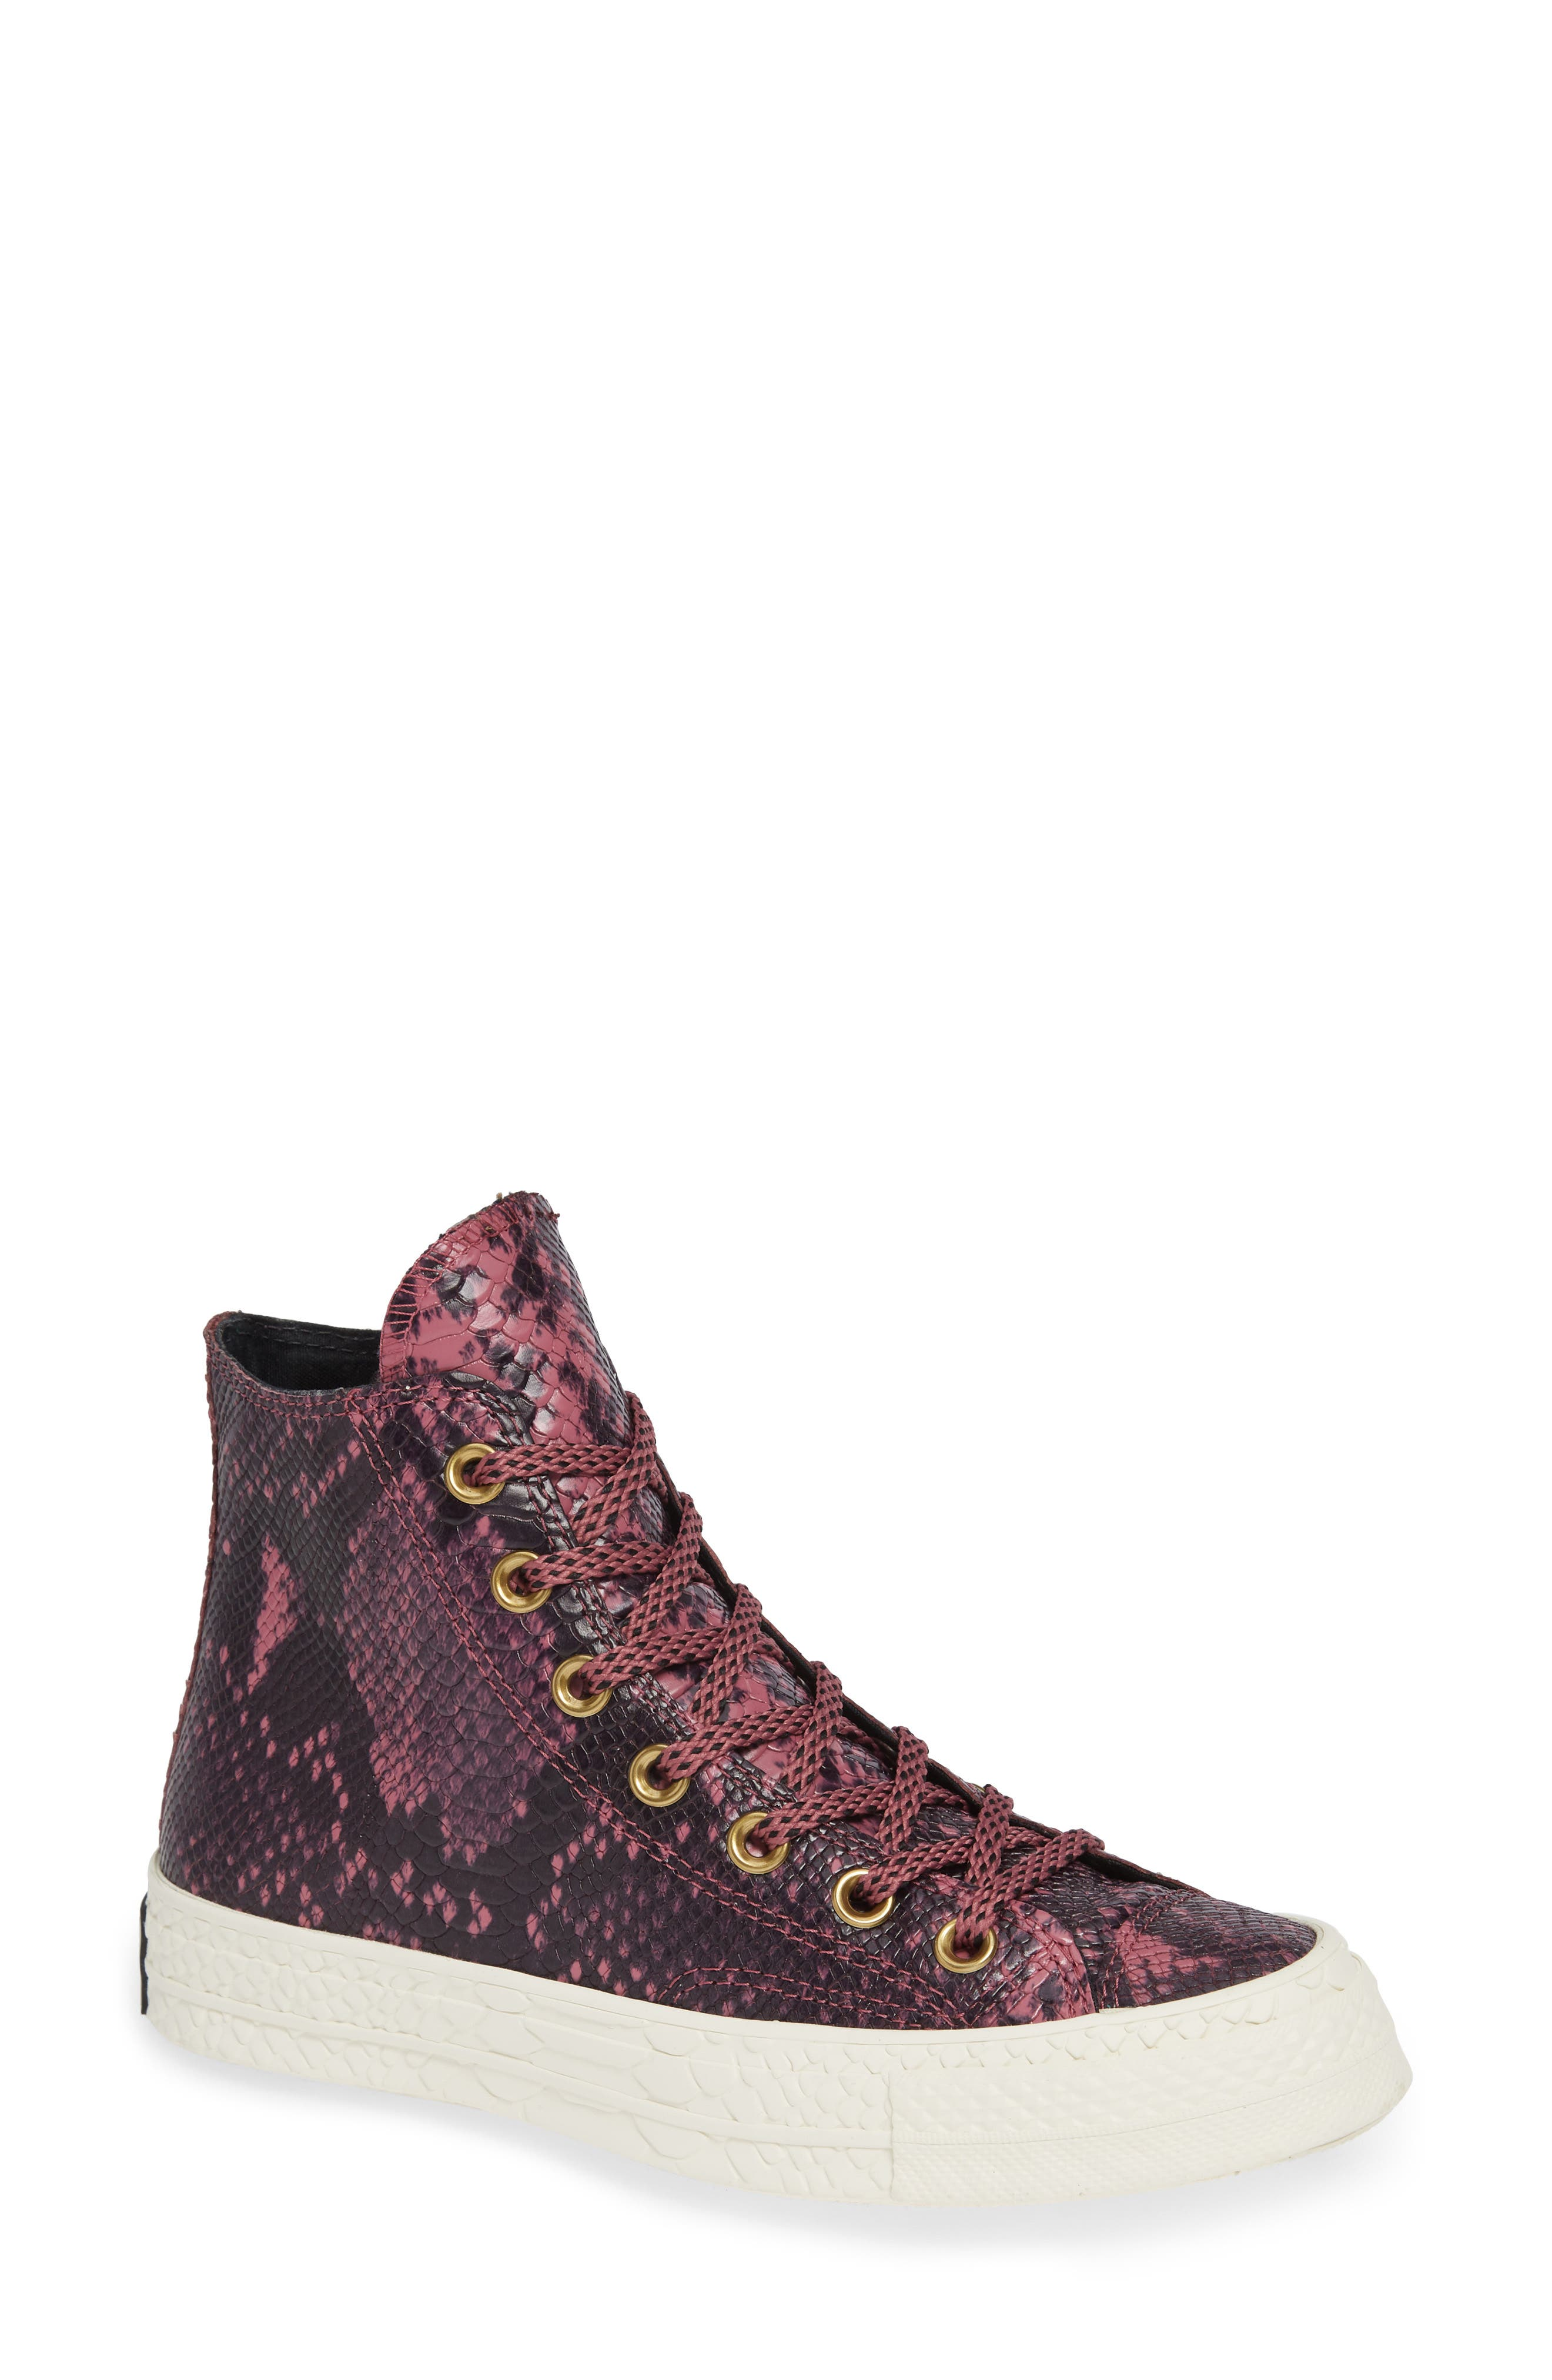 Chuck Taylor<sup>®</sup> All Star<sup>®</sup> CT 70 Reptile High Top Sneaker,                             Main thumbnail 1, color,                             VINTAGE WINE LEATHER